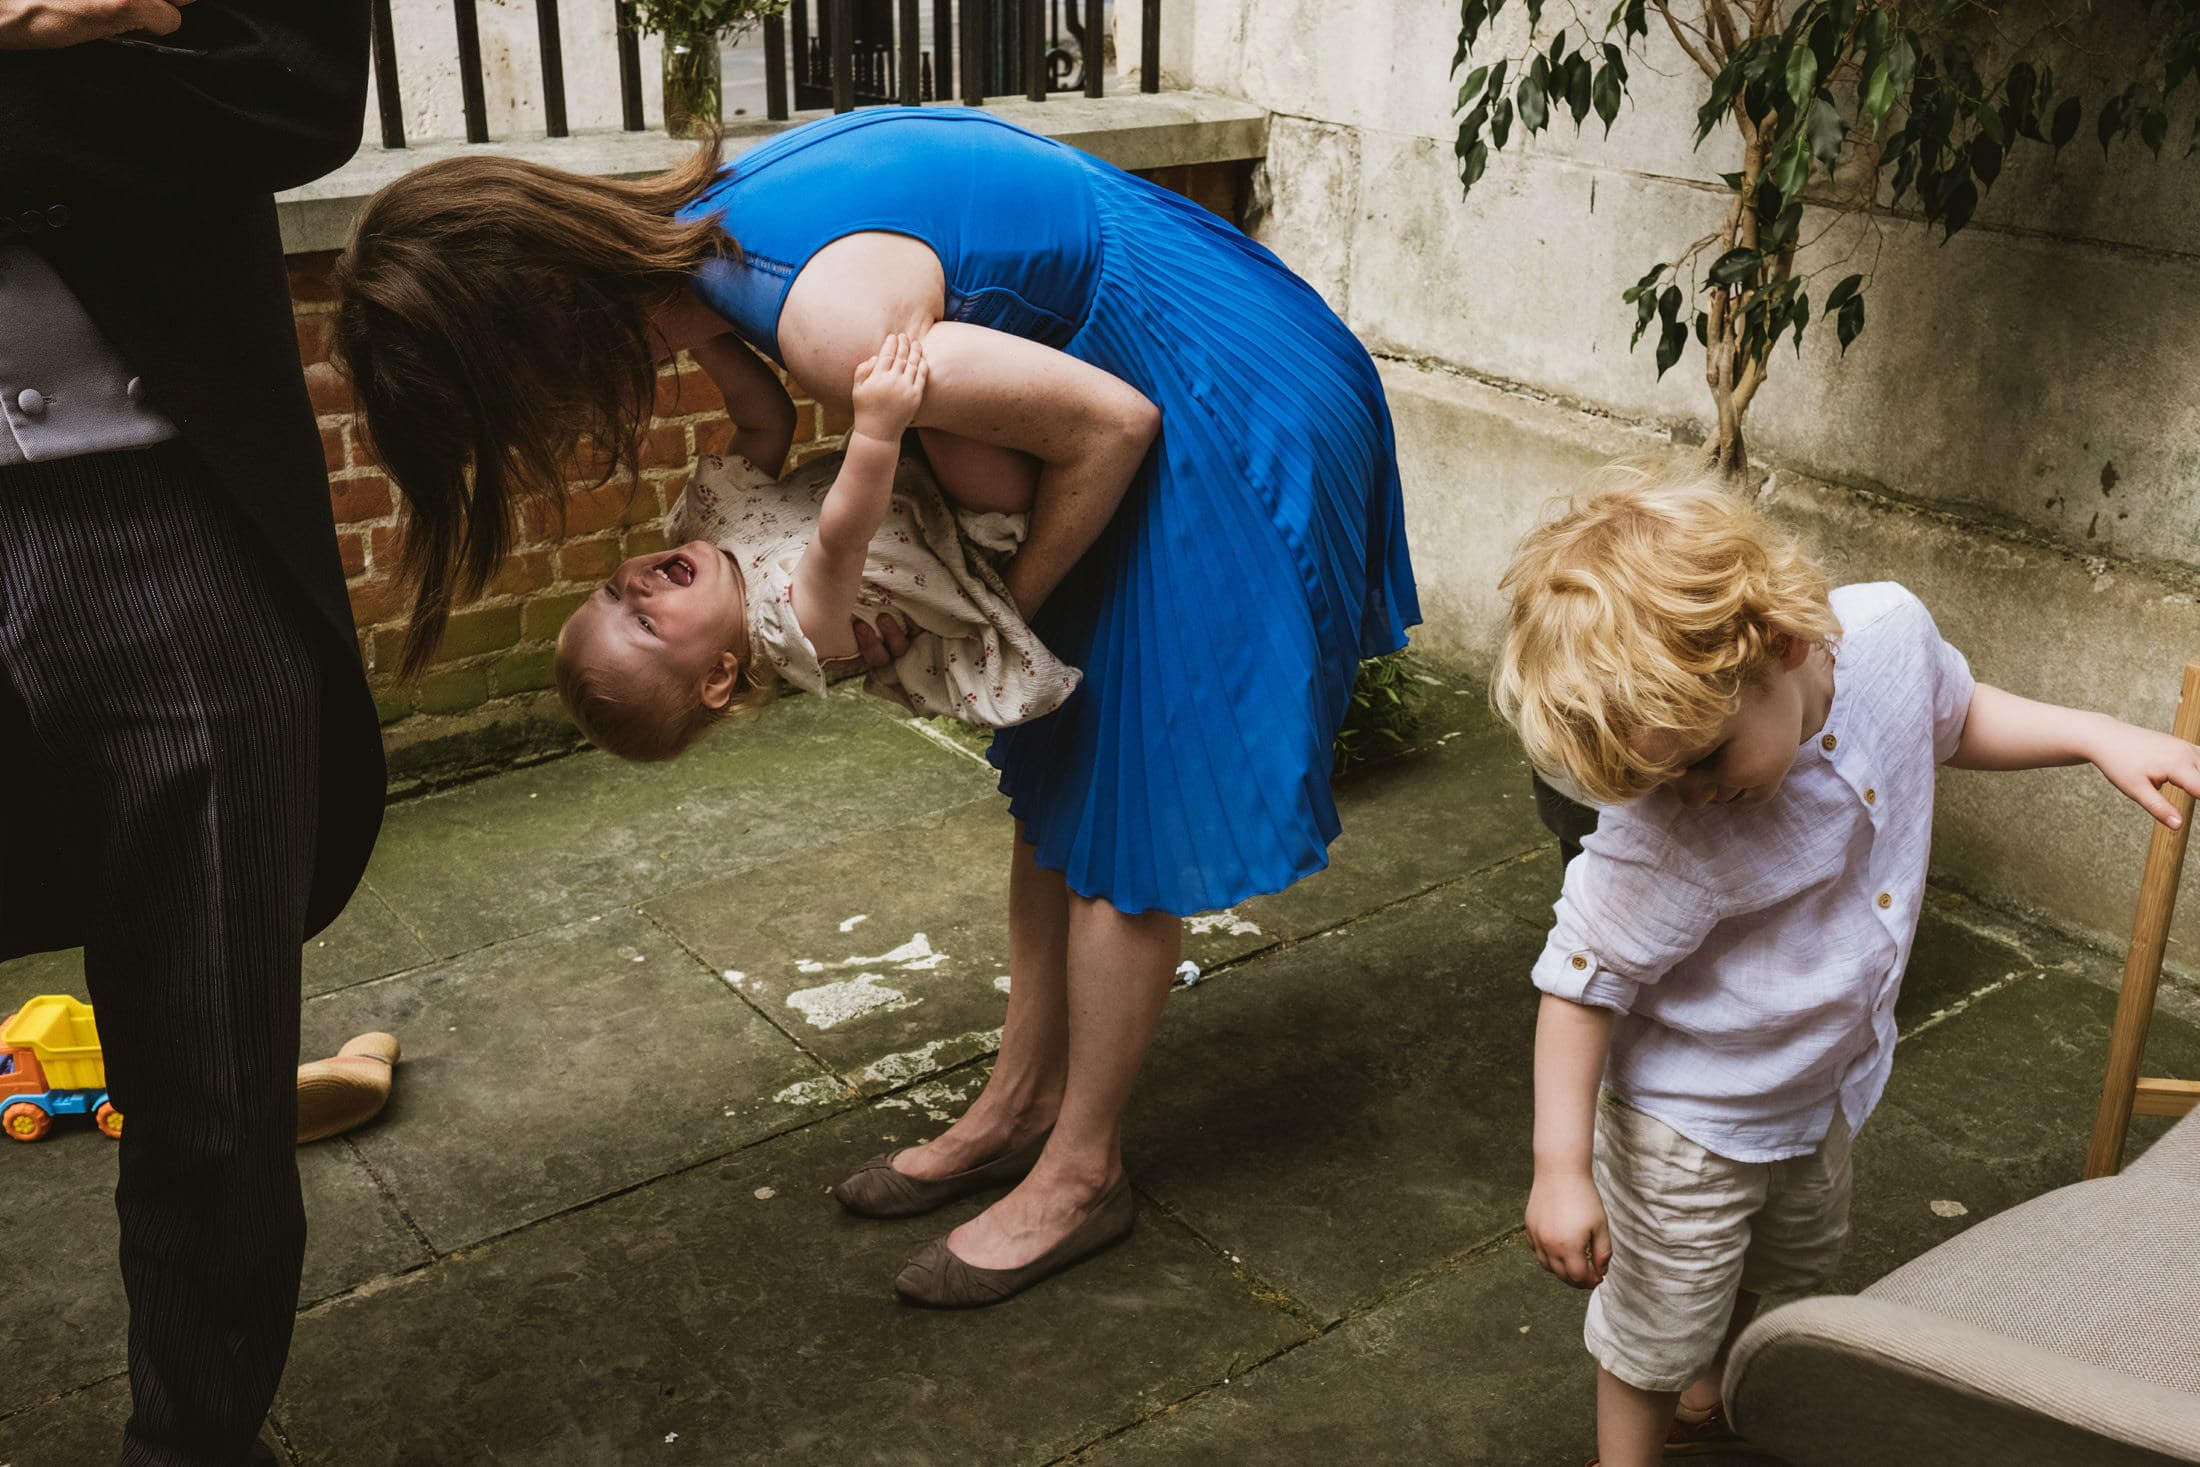 Woman in blue dress bends over and plays with the baby she is carrying at a London outdoor wedding reception. Right of the frame another child stands looking down at the floor inquisitively whilst on the left of the frame we can see a mans legs in pin-striped trousers